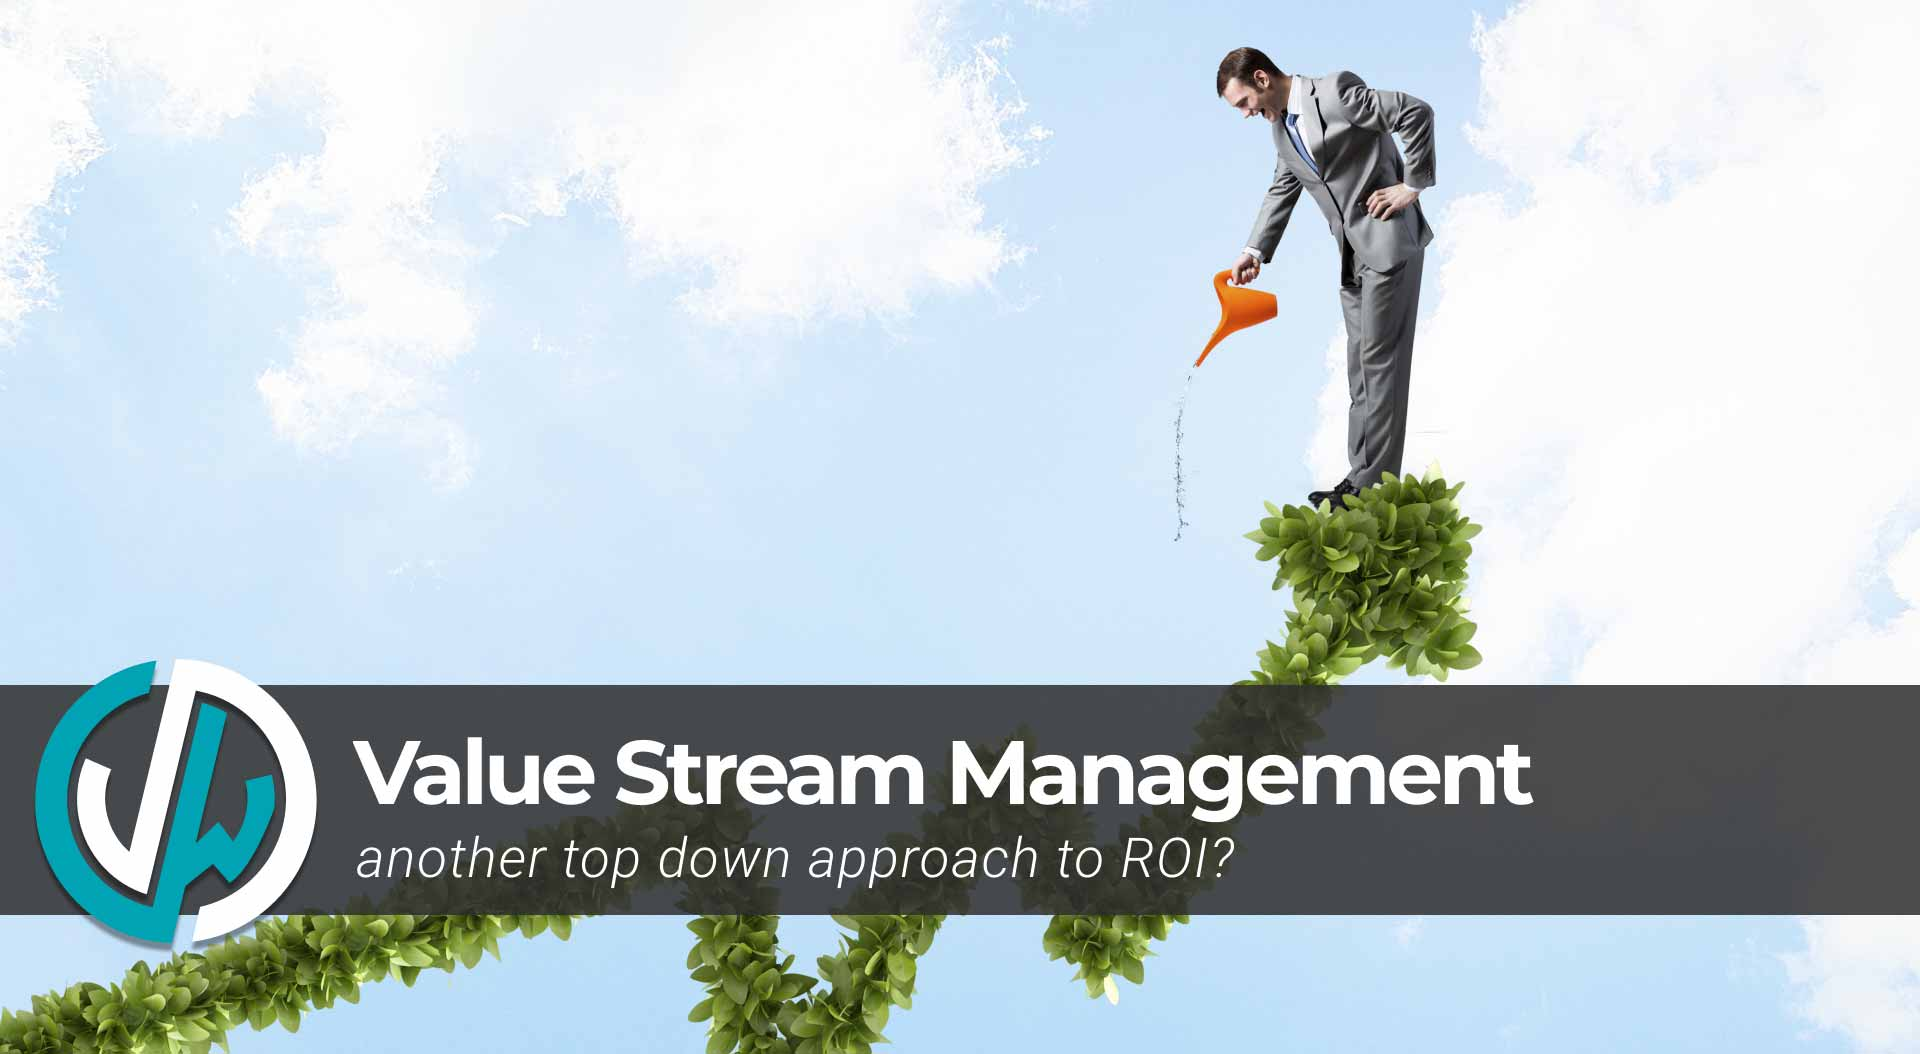 Value Stream Management - another top down approach to ROI?